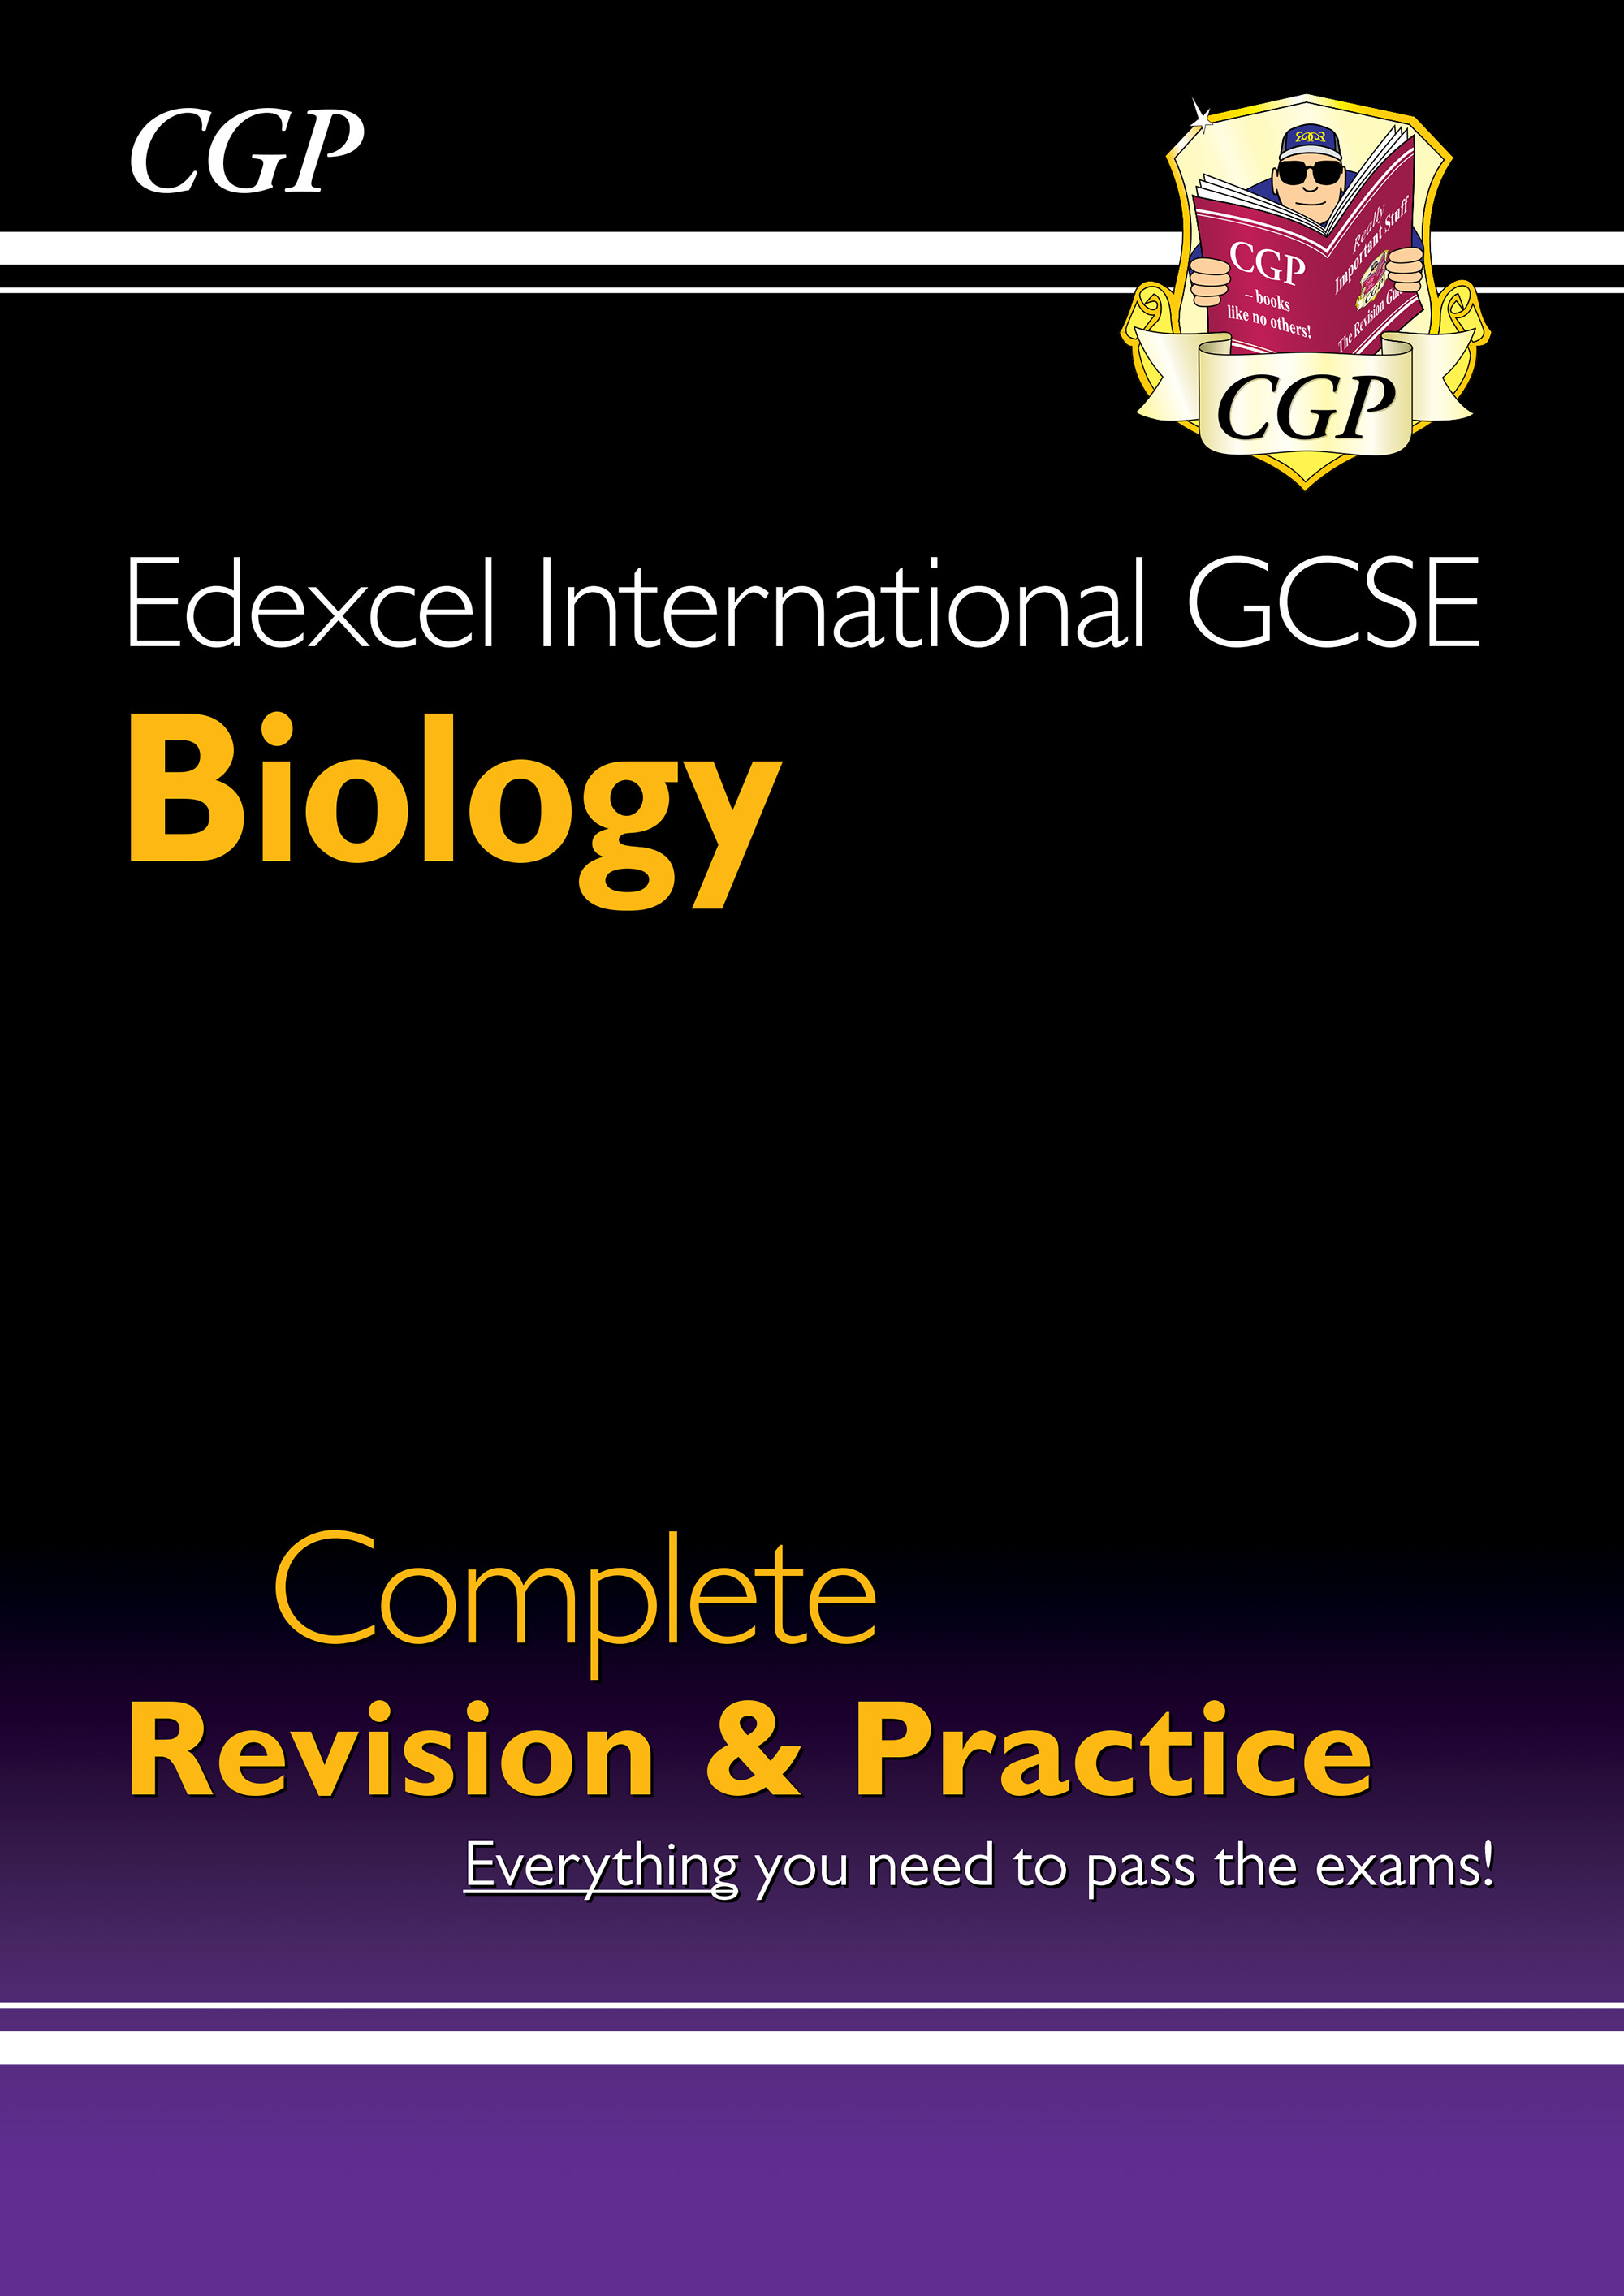 BESI41DK - Edexcel International GCSE Biology Complete Revision & Practice (A*-G)